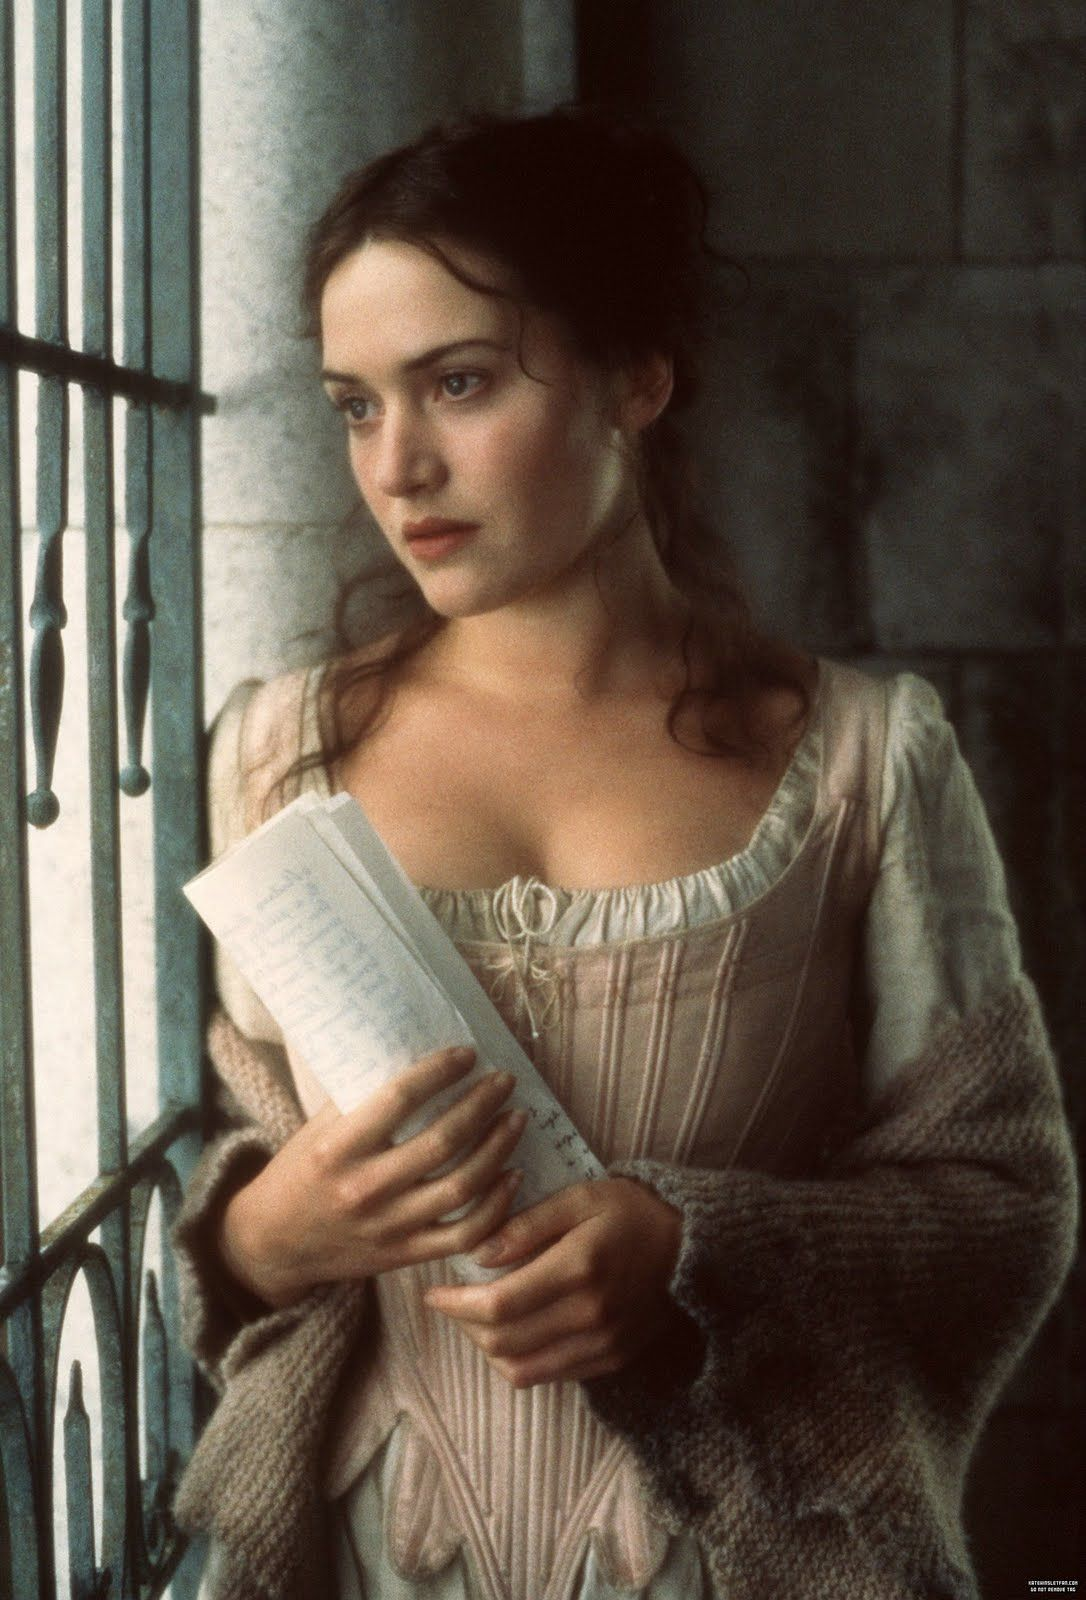 Kate Winslet As Madeleine Maddy Leclerc Quills 2000 The Infamous Writer The Marquis De Sade Of 18th Century France Kate Winslet Portrait Kate